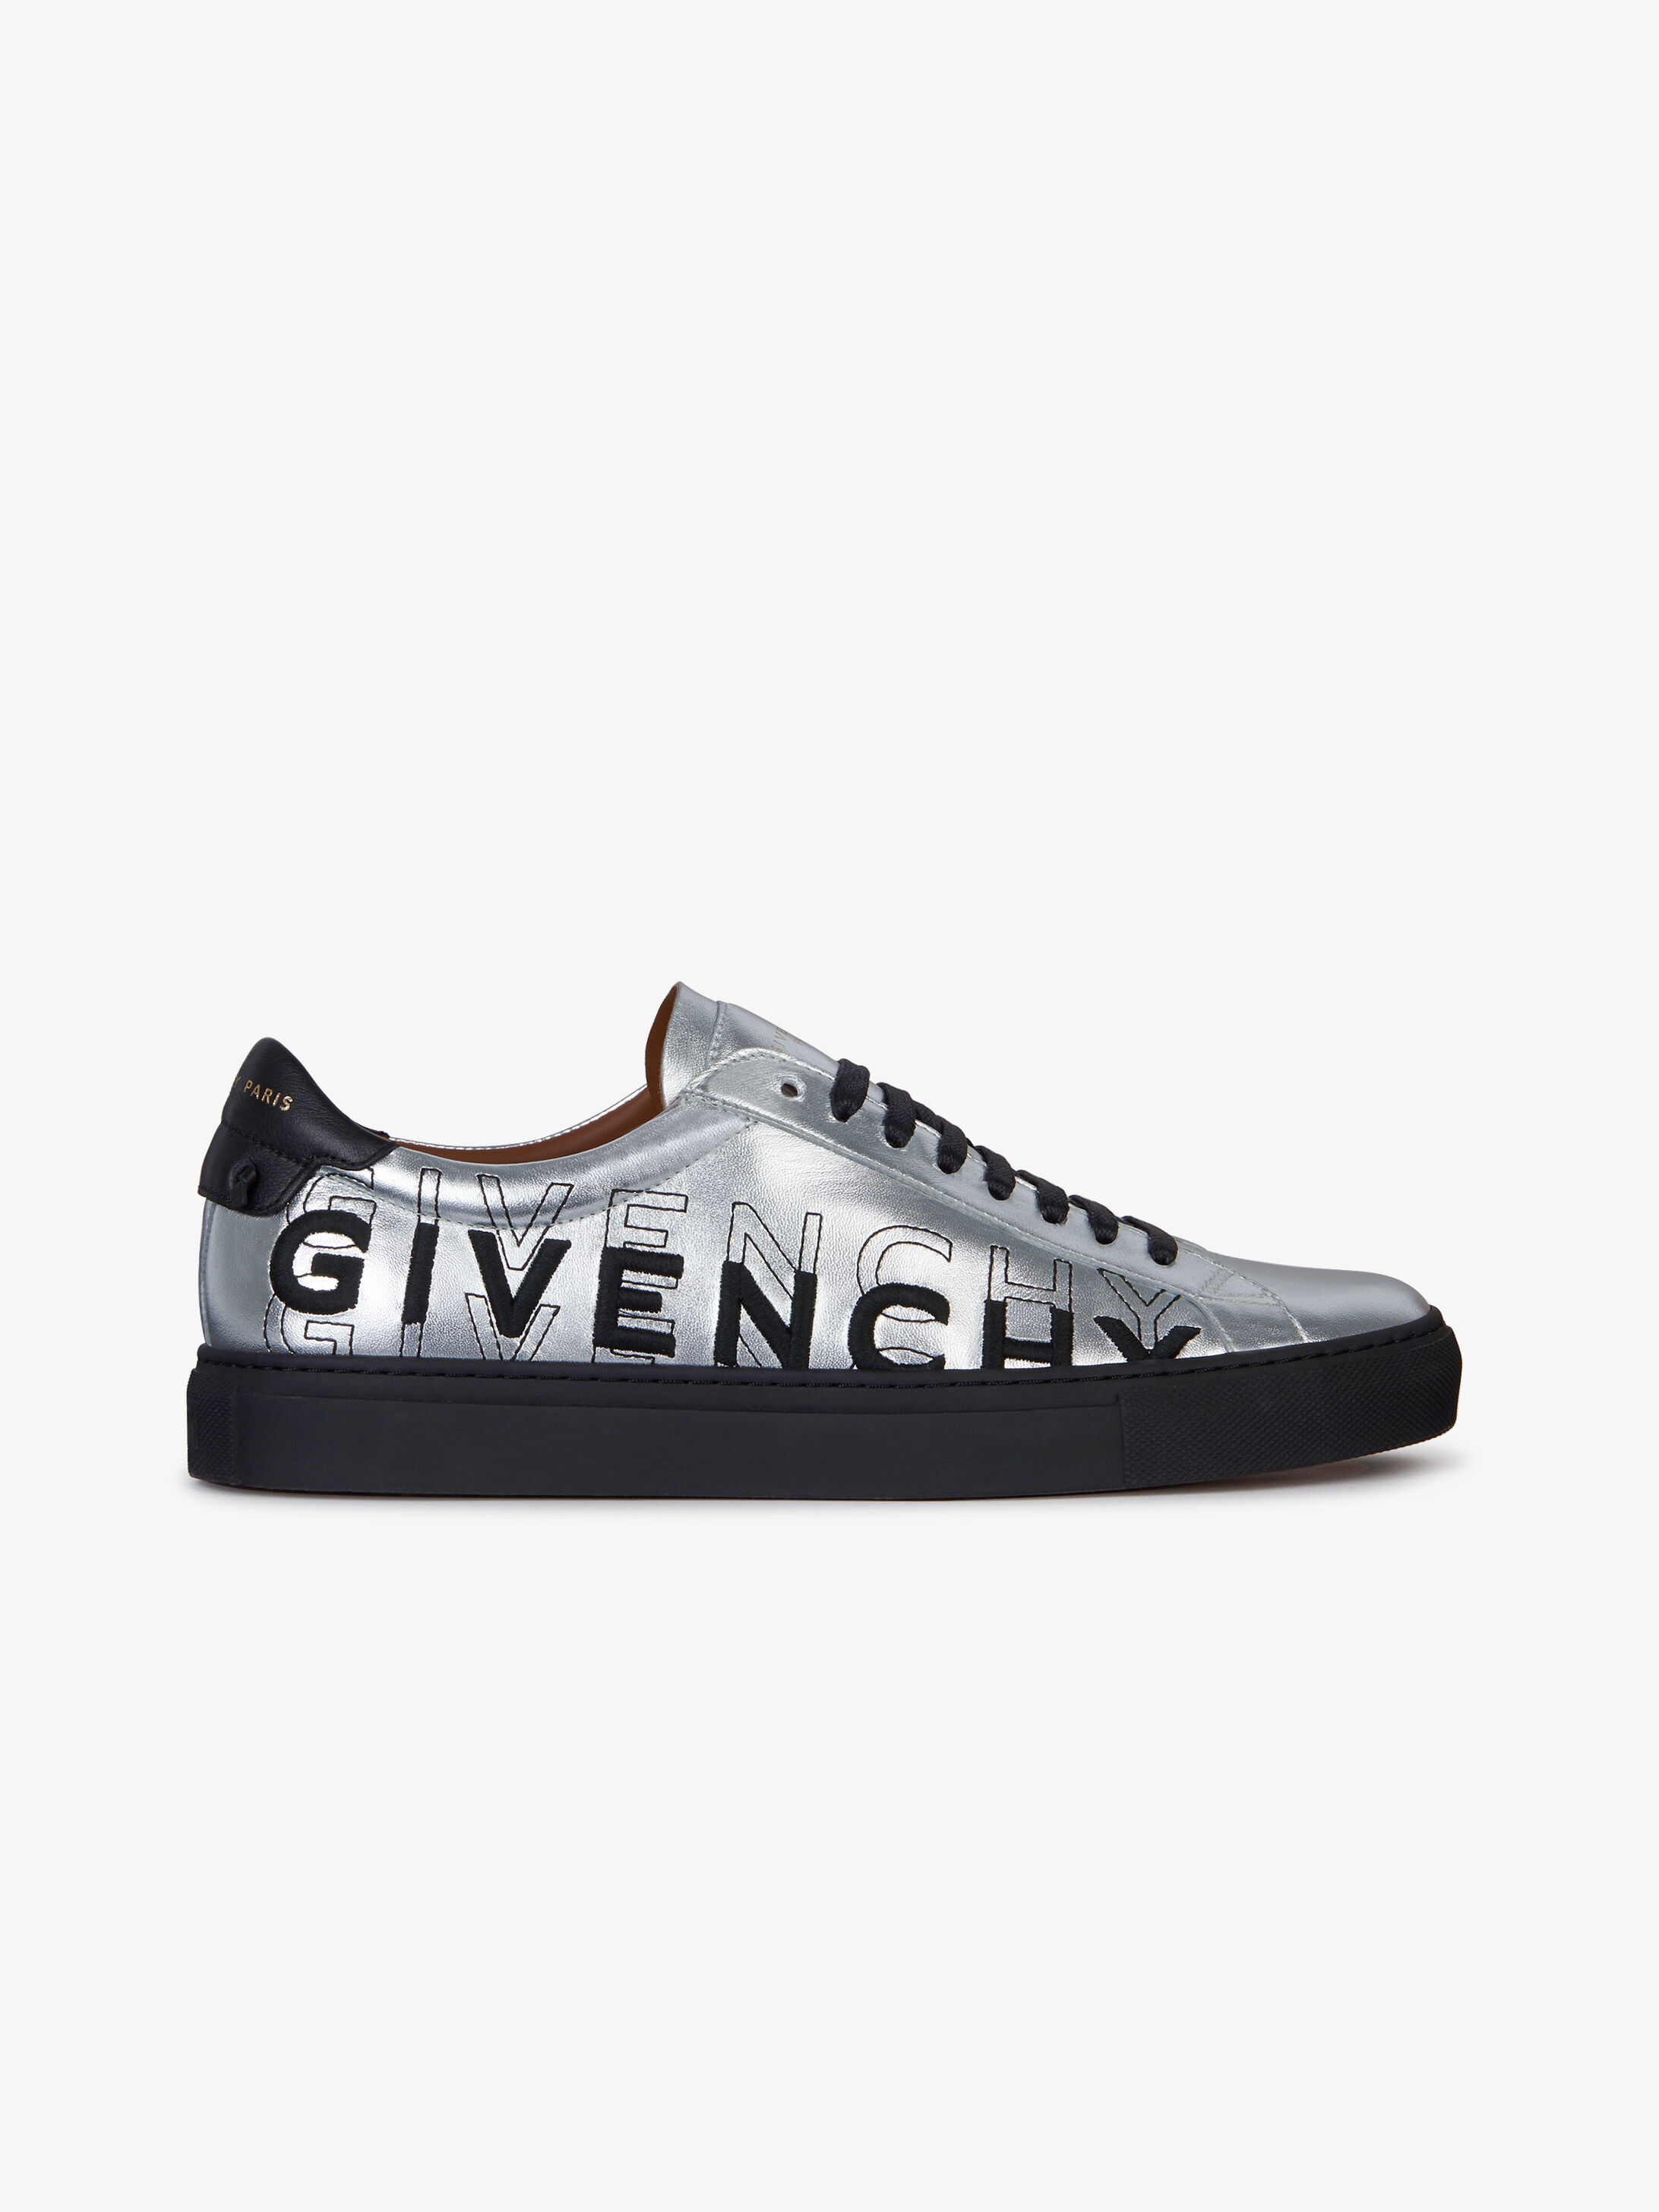 1d5f73b4 Men's Sneakers collection by Givenchy. | GIVENCHY Paris